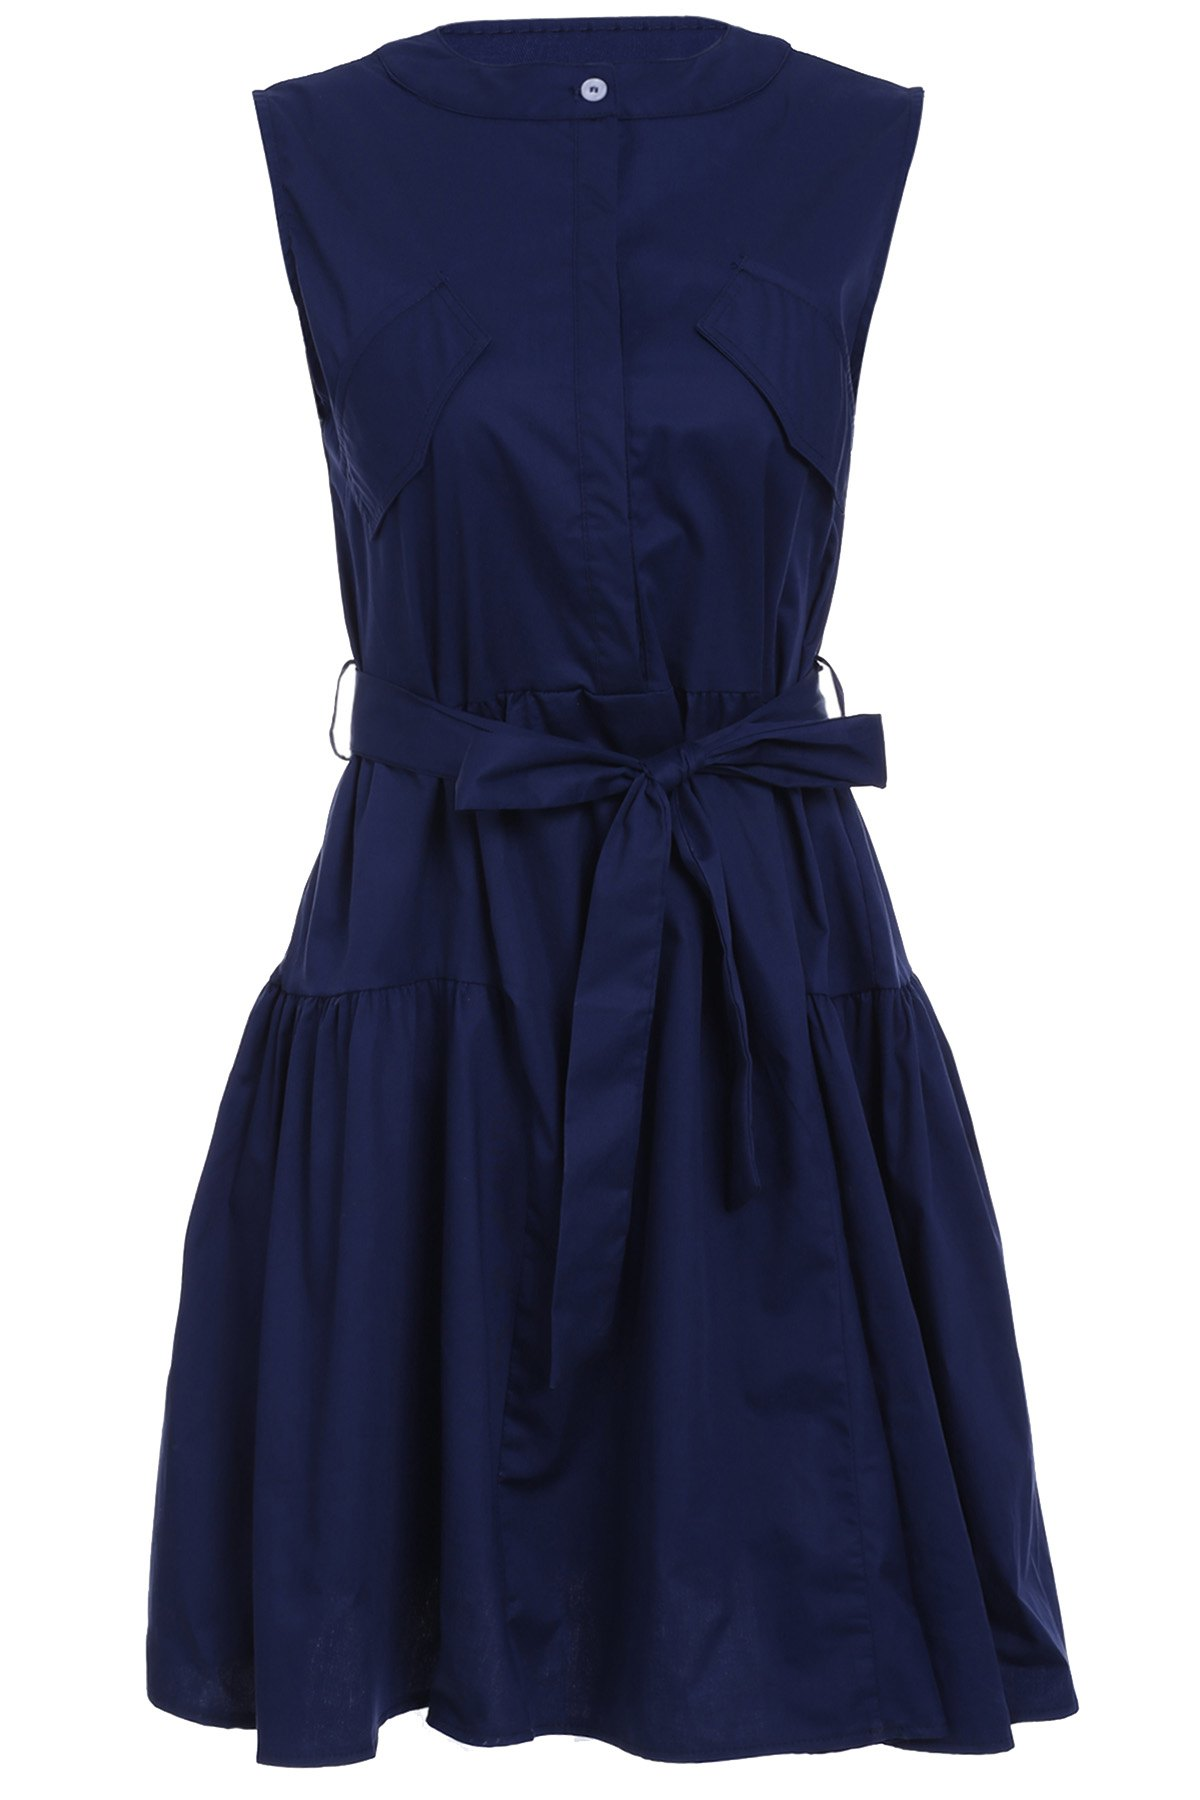 Trendy Sleeveless Pure Color Belted Dress For Women